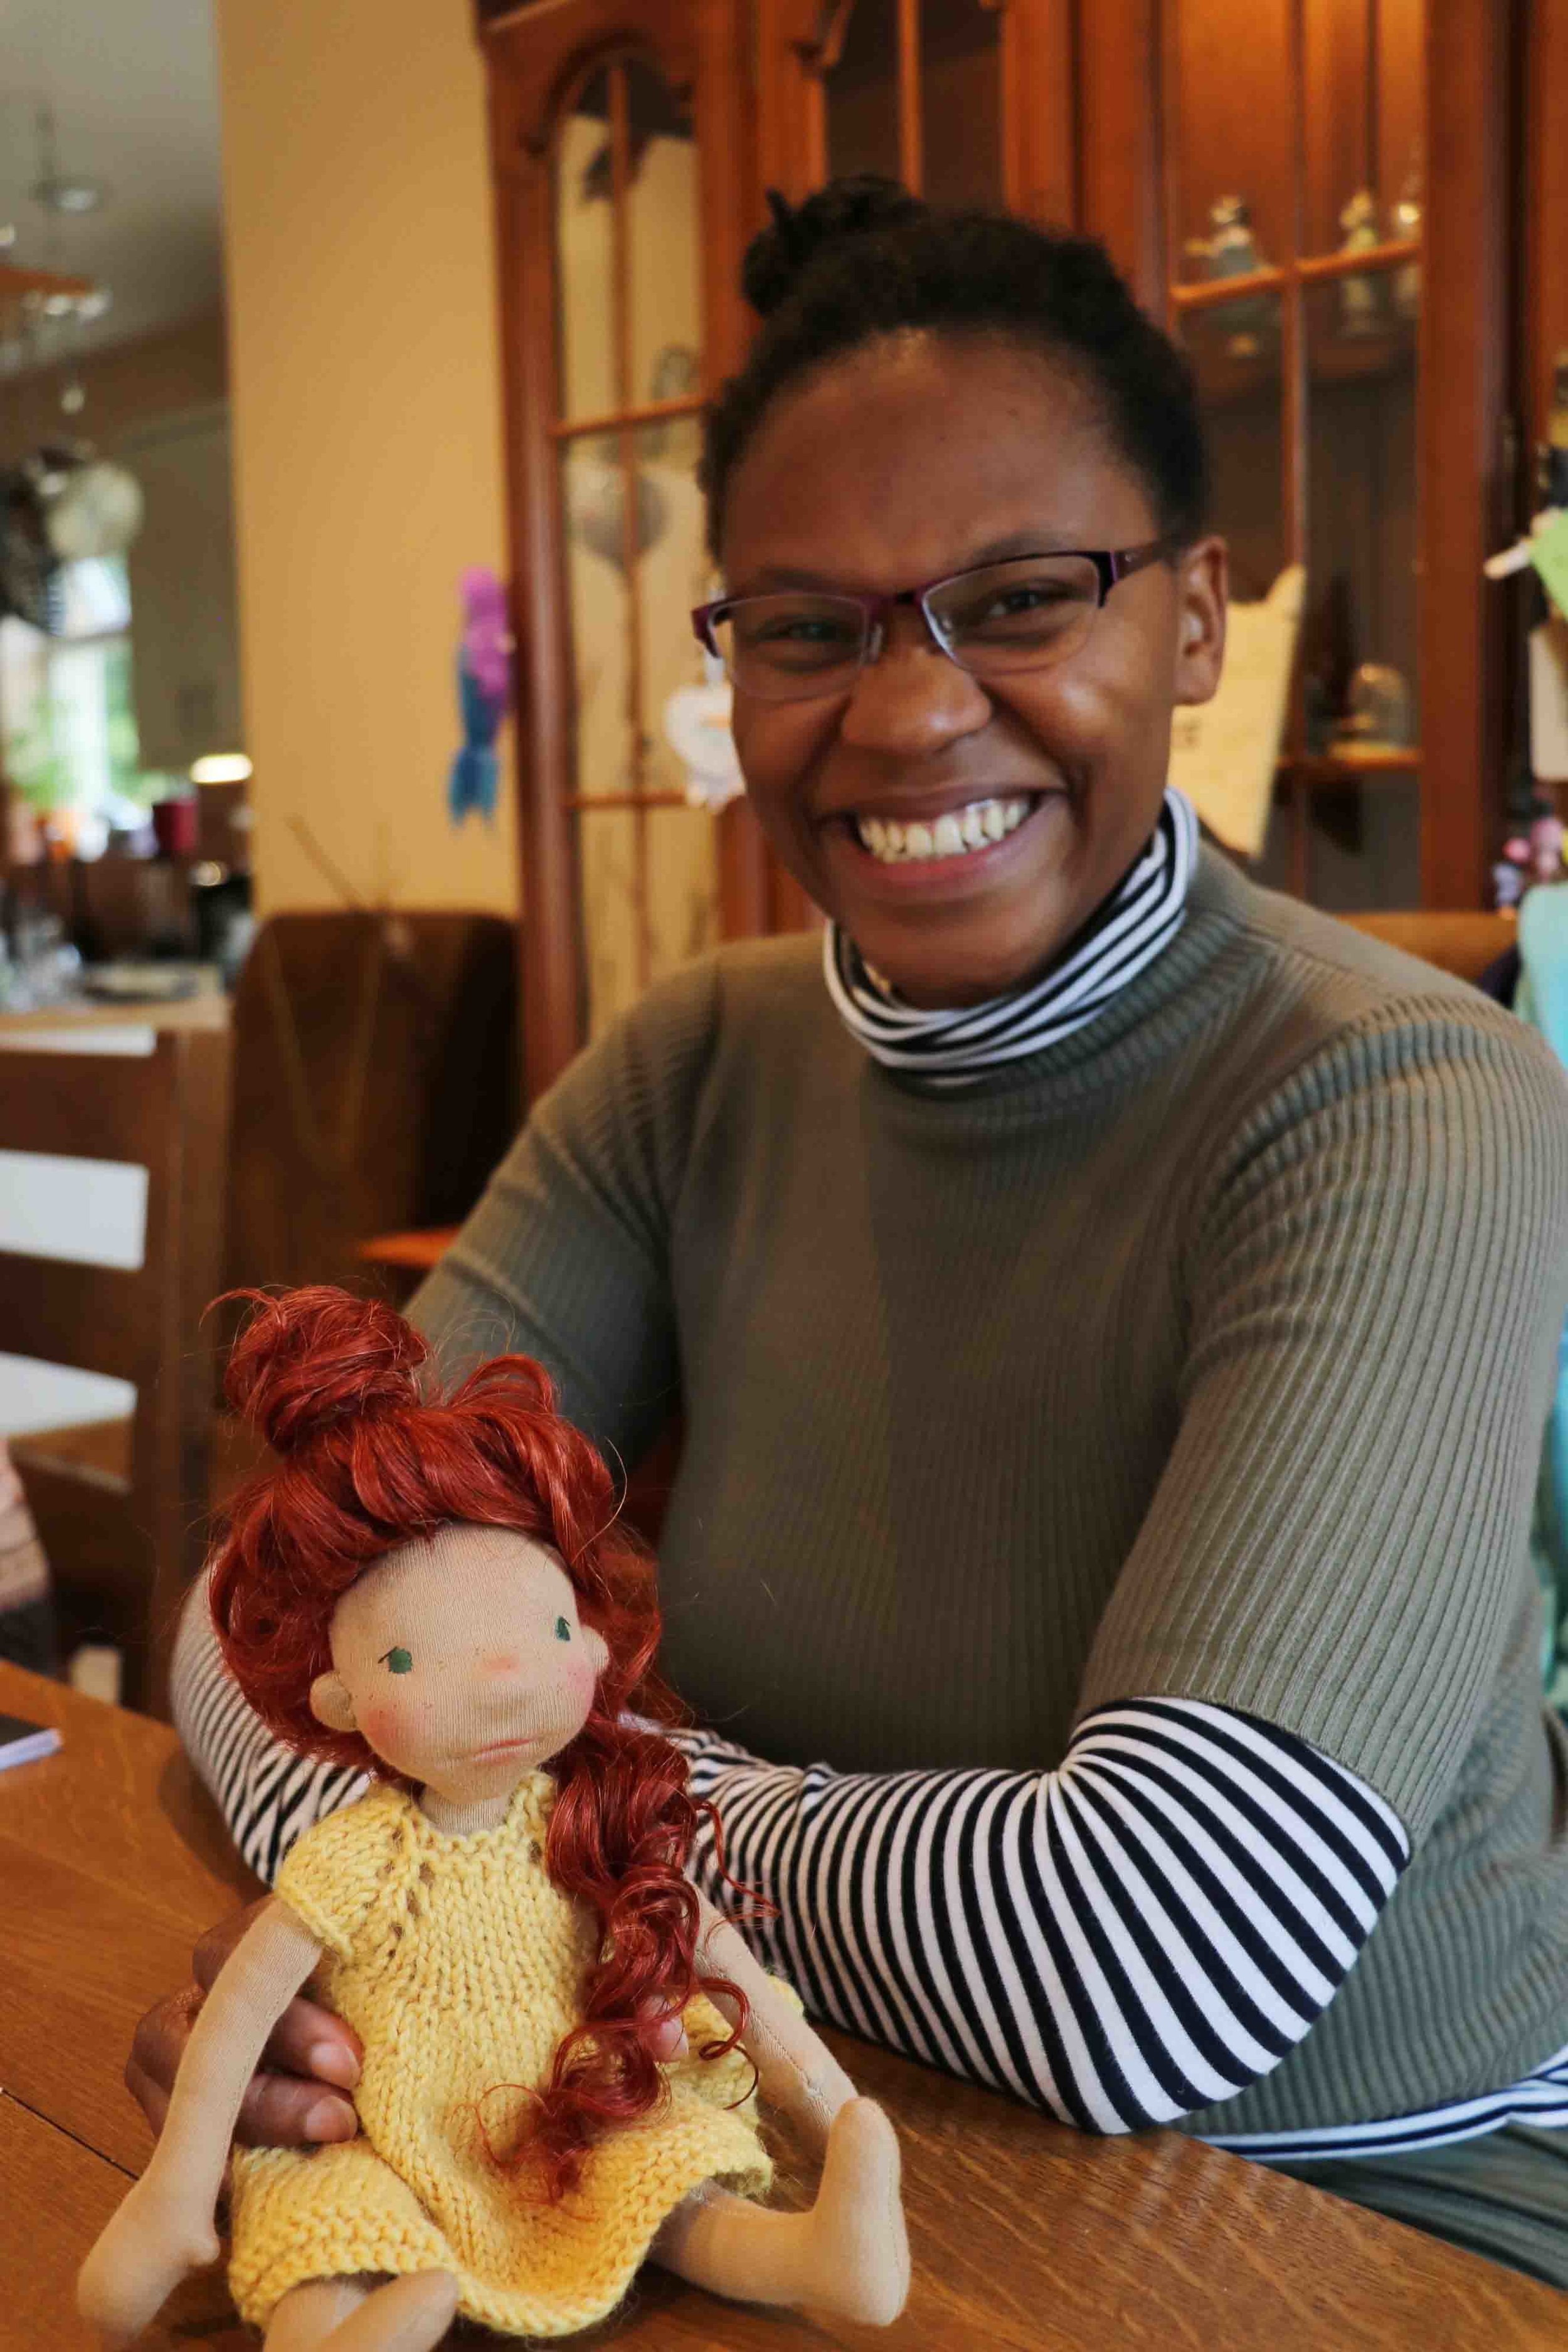 Sephora is a ray of sunshine. She had us all in stitches laughing and thanks to her I know of Sticky Toffee Pudding. Here she is holding her beautiful doll. Fig and me doll workshop.